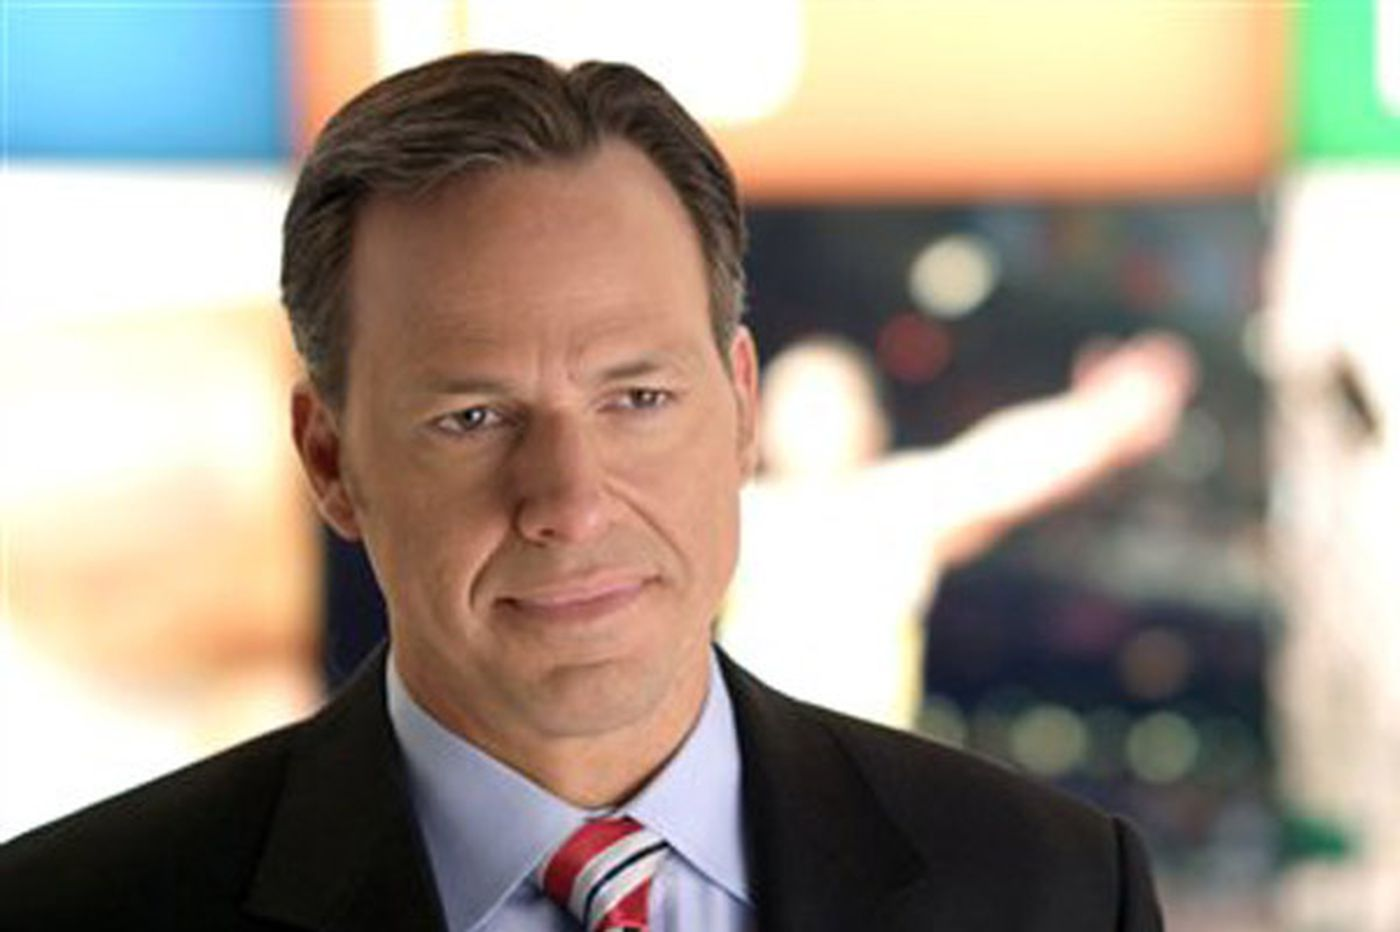 Jake Tapper is drawing Dilbert for charity. Not everyone is happy about it.